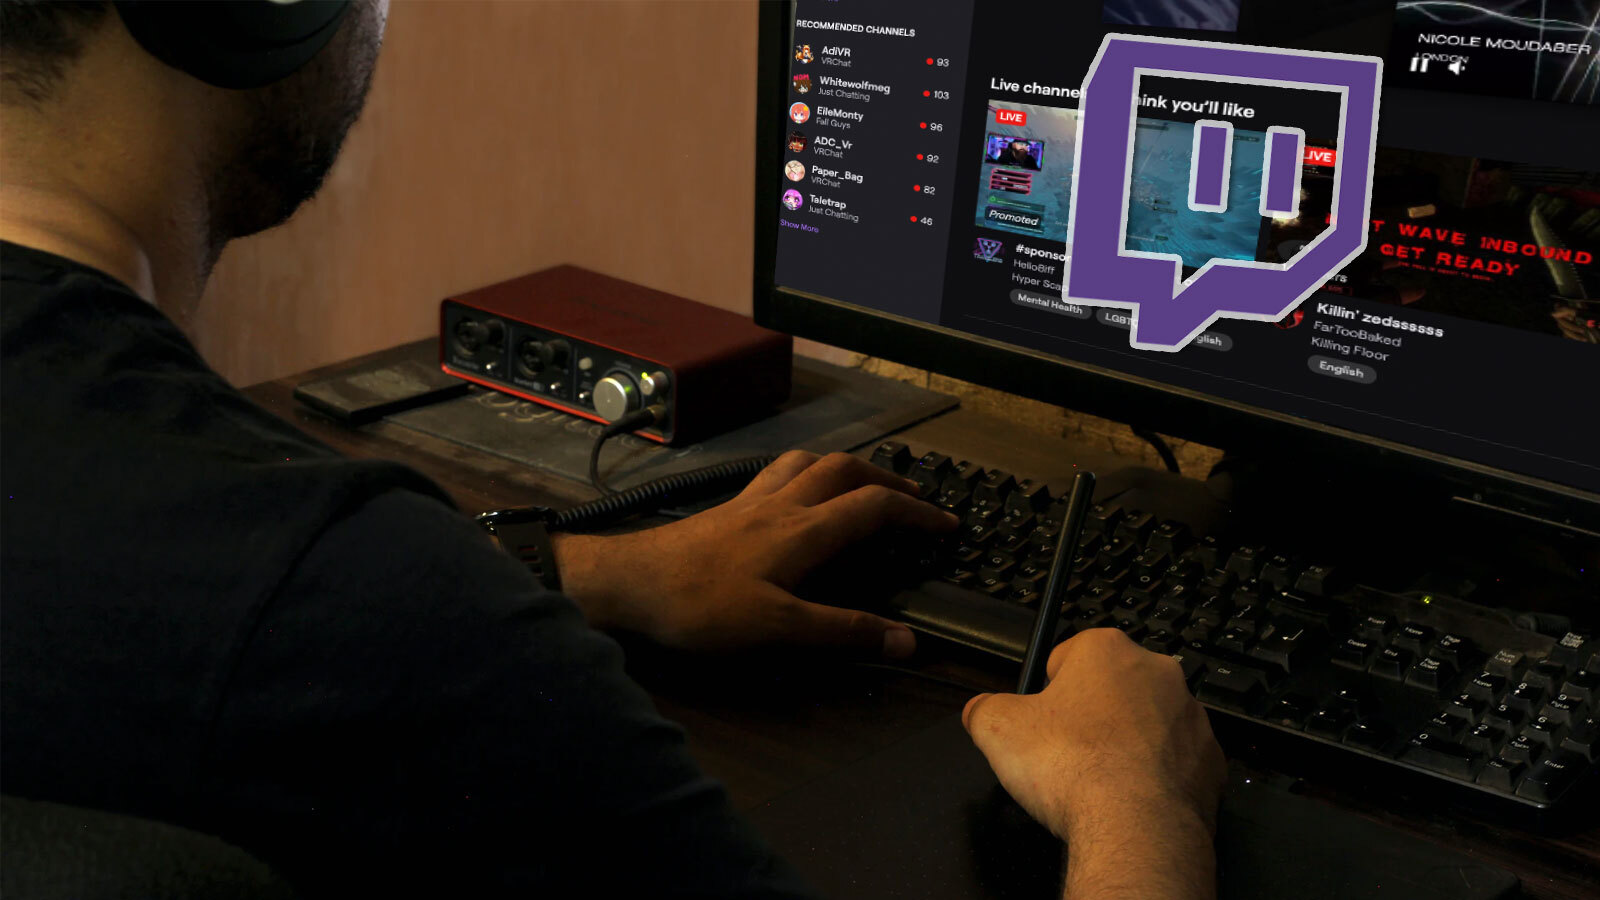 creepy-twitch-fan-hunts-down-female-streamer-date-in-real-life